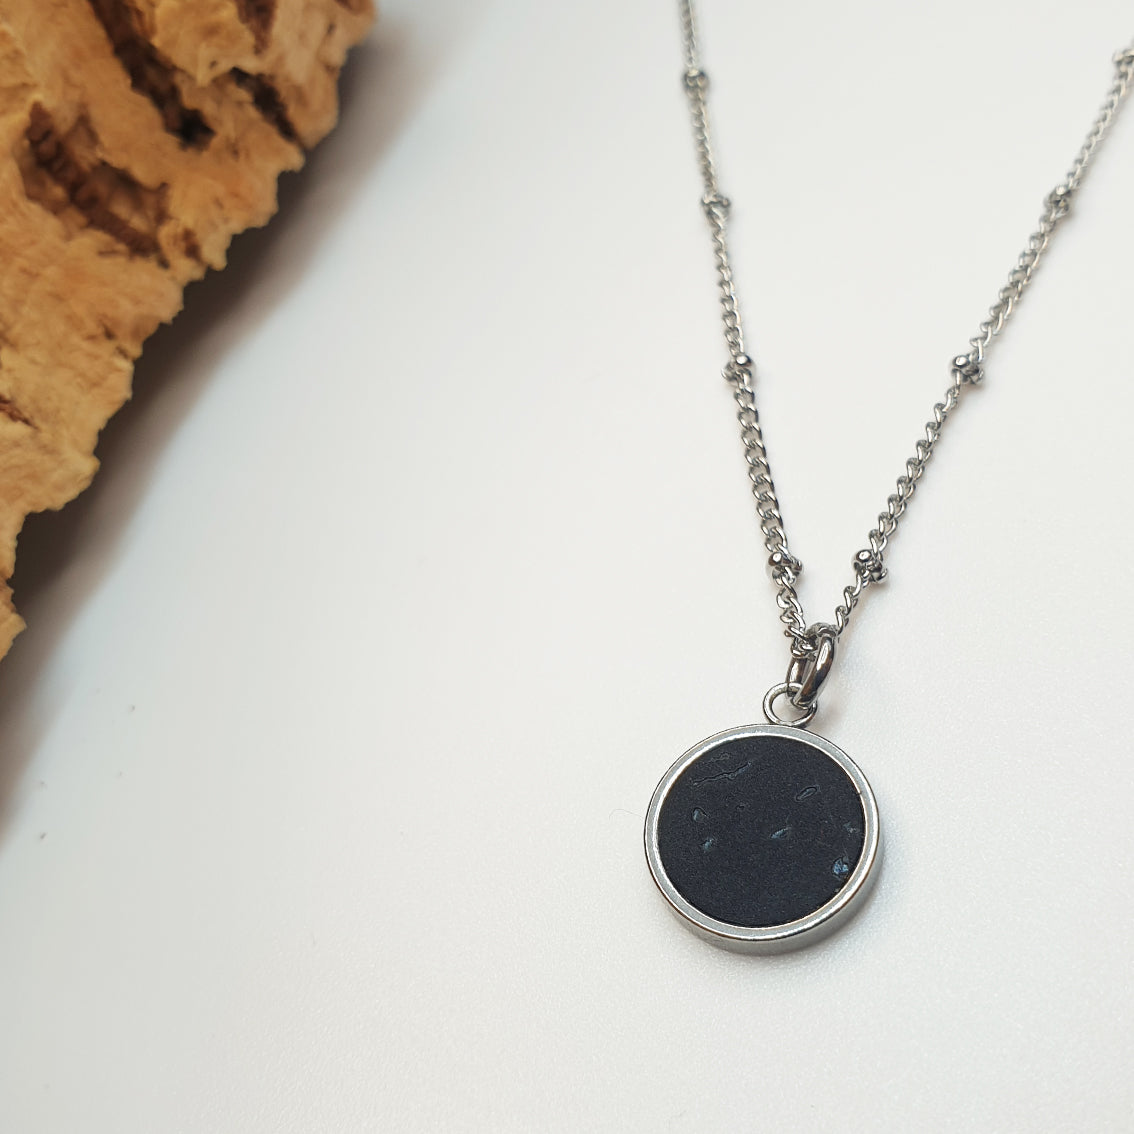 Fabrikk 1 Small Planet Necklace | Coal Black | Vegan 'Leather'